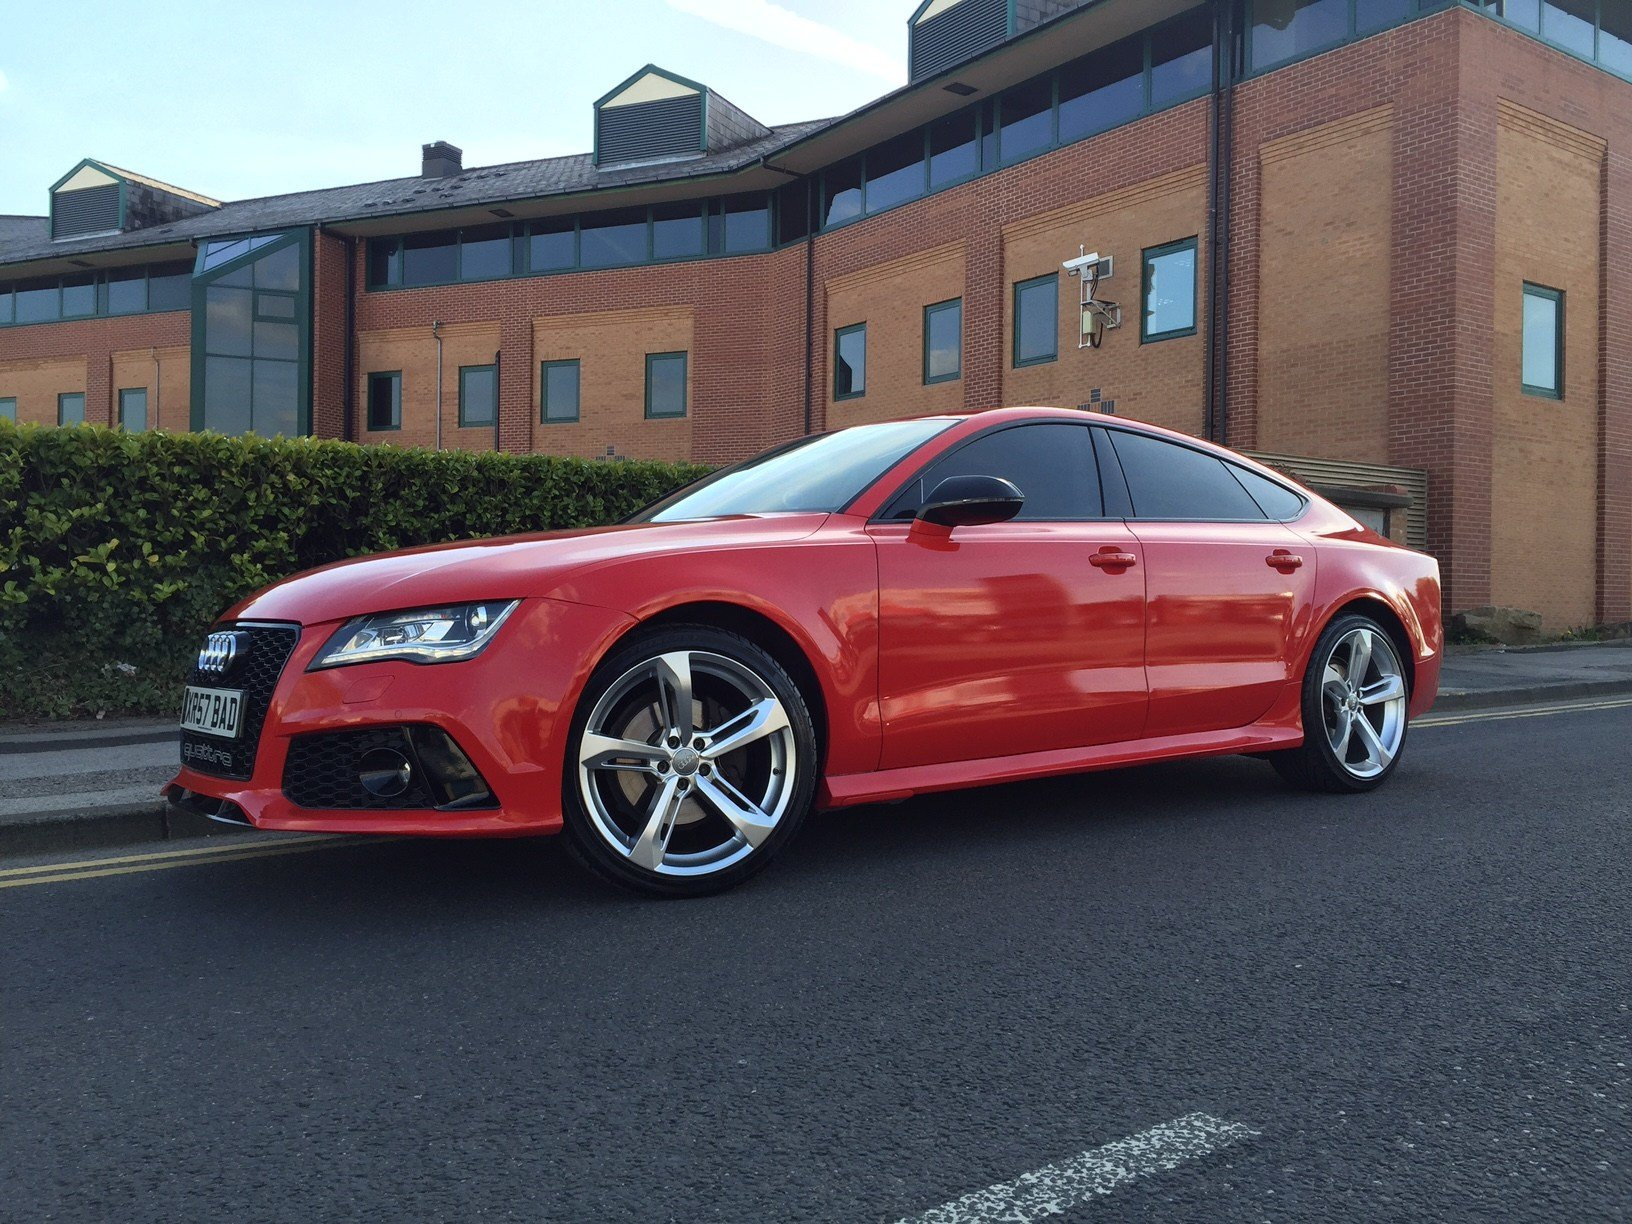 Latest Audi A7 2010 2014 Rs7 Conversion Recreation Replica Free Download